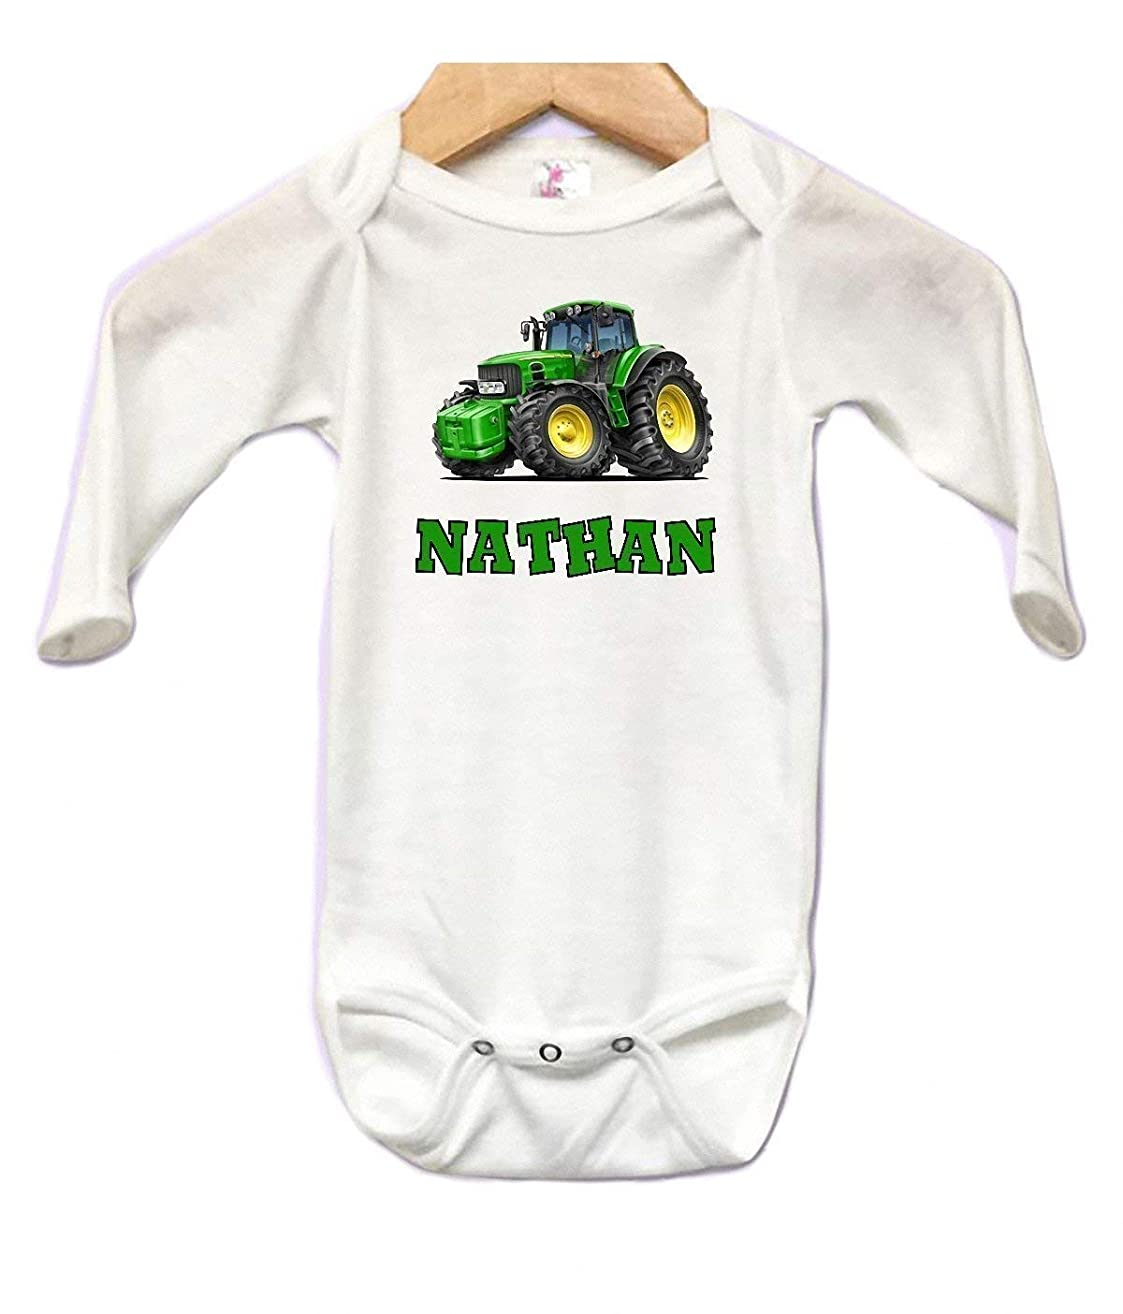 Baby Onesie Bodysuit Long Sleeve Cute Tractor Personalized Custom 0 to 3 mos or 3 to 6 months or 6 to 12 months for Boys